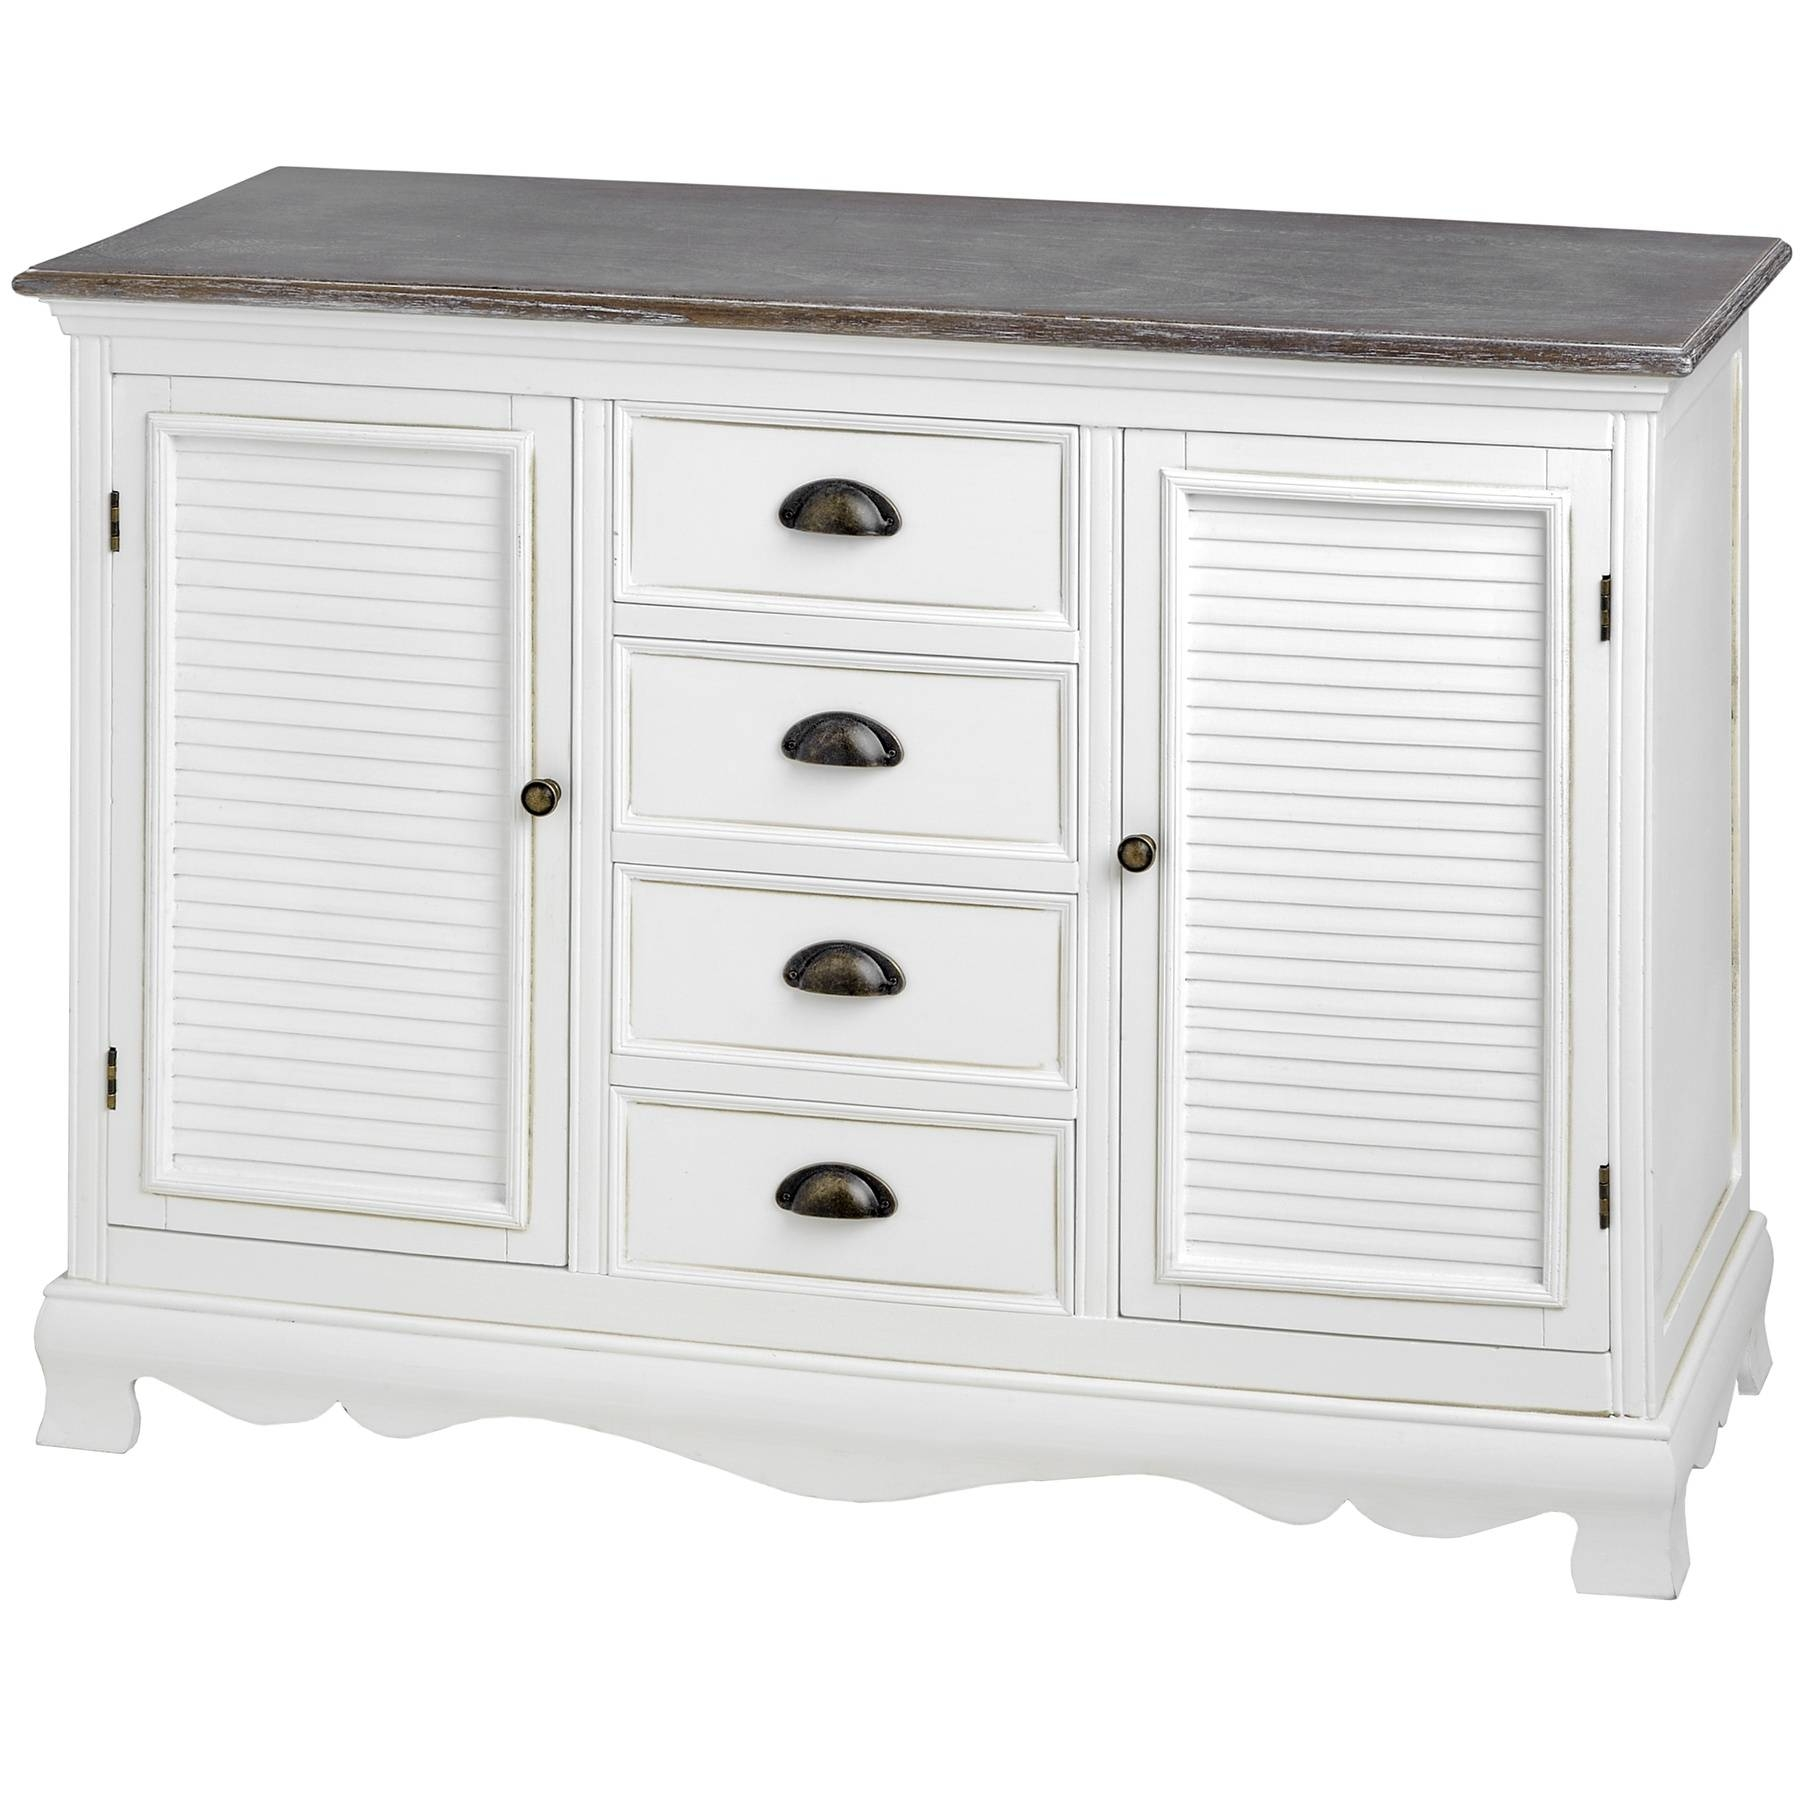 Louisiana White Kitchen Hallway Furniture, Dresser,console Table Pertaining To Large White Sideboard (#13 of 20)